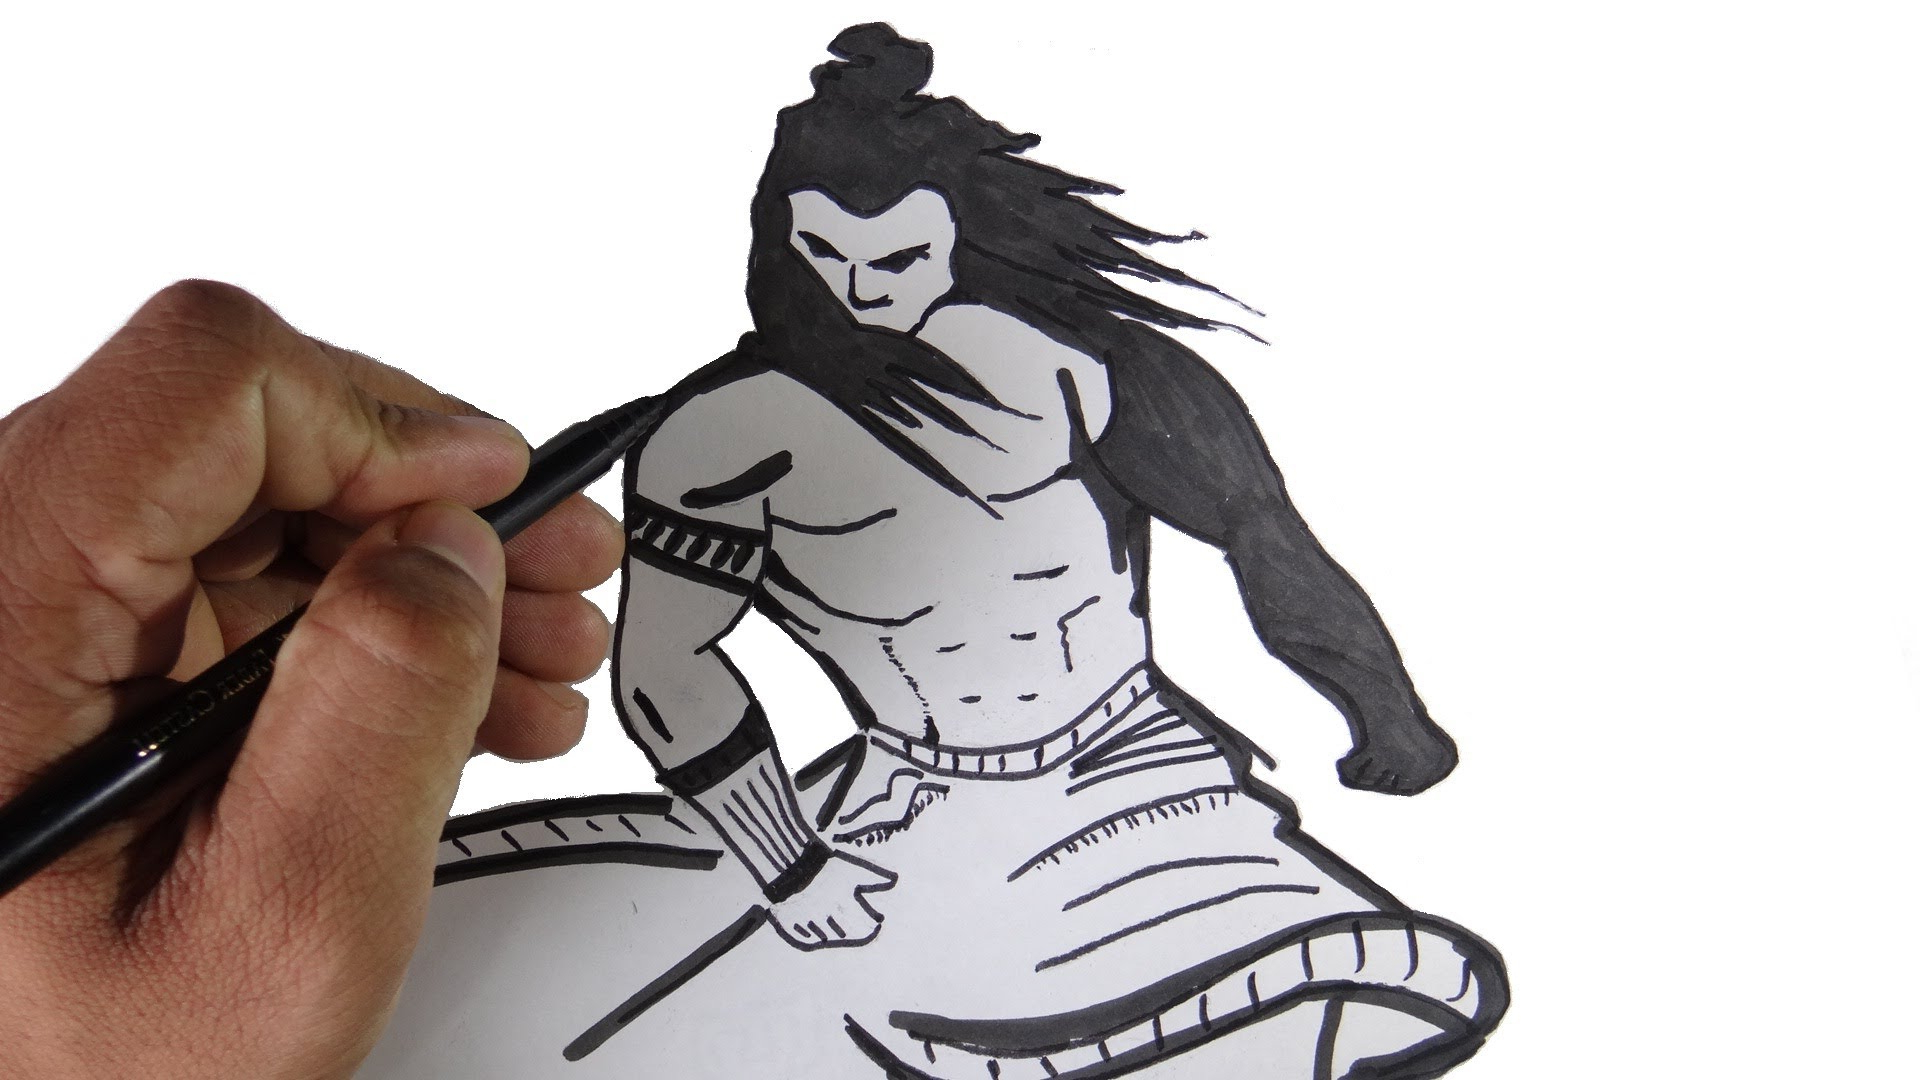 1920x1080 Angry Lord Shiva Face Sketch Lord Shiva Angry Sketch Lord Shiva